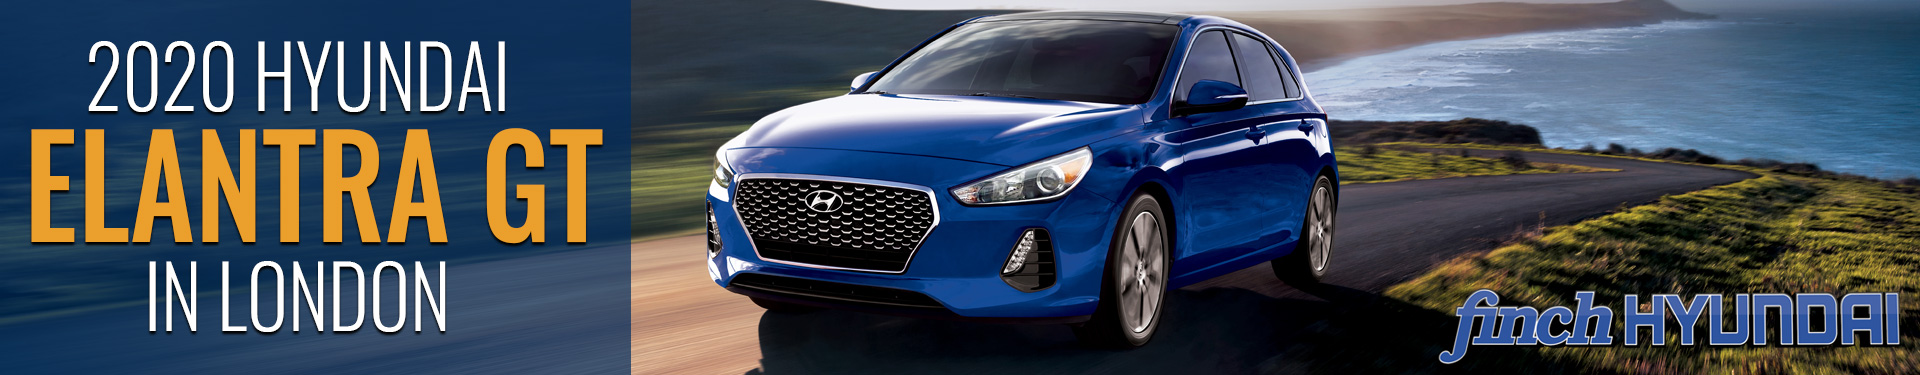 Discover the new 2020 Hyundai Elantra GT in London Ontario, Sarnia, Stratford & Woodstock from Finch Hyundai, new Cars in London